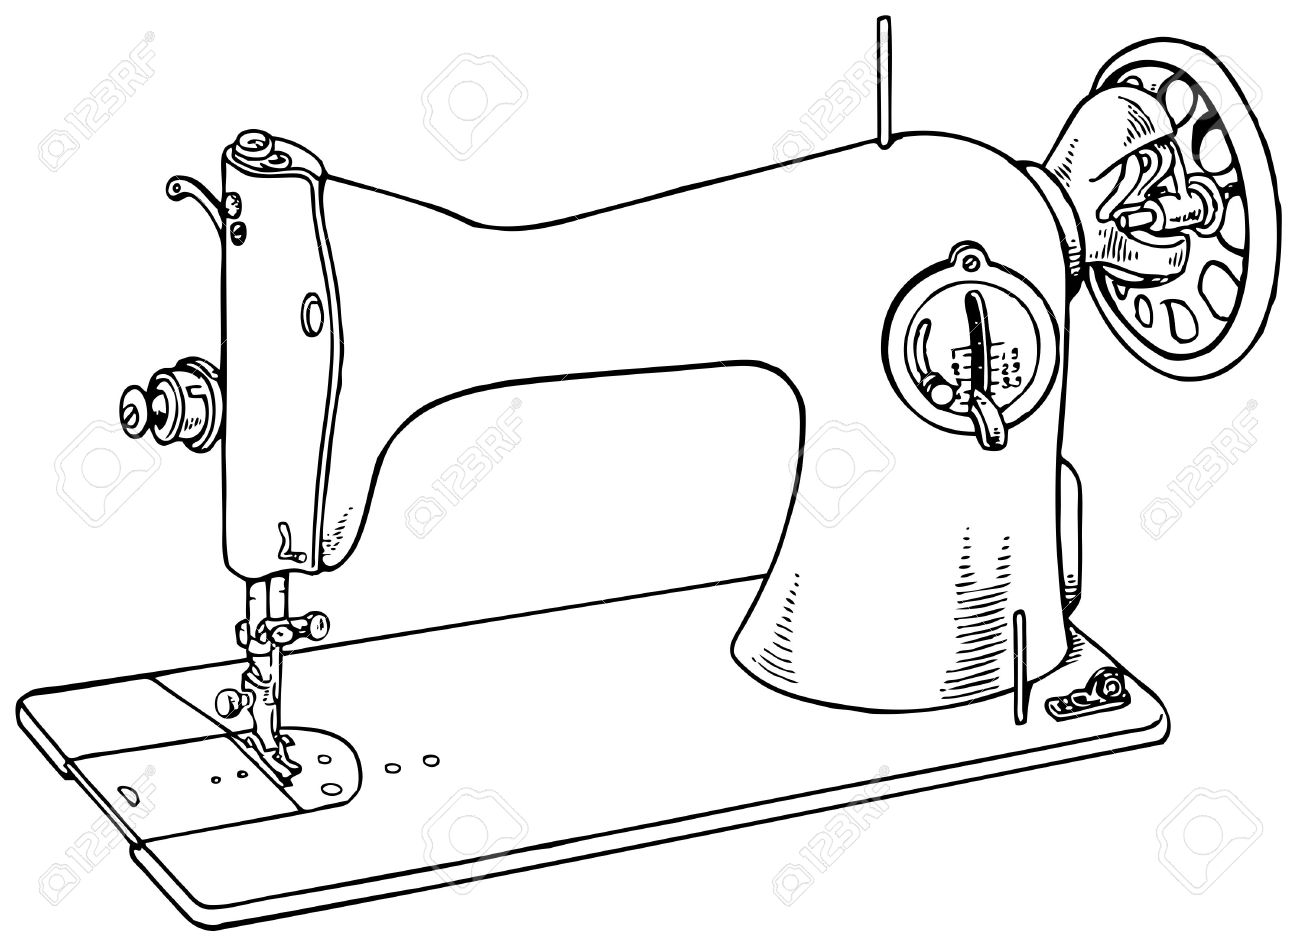 Vintage Sewing Machine Drawing At Free For Diagram Car Interior Design 1300x941 Isolated On White Background Royalty Cliparts